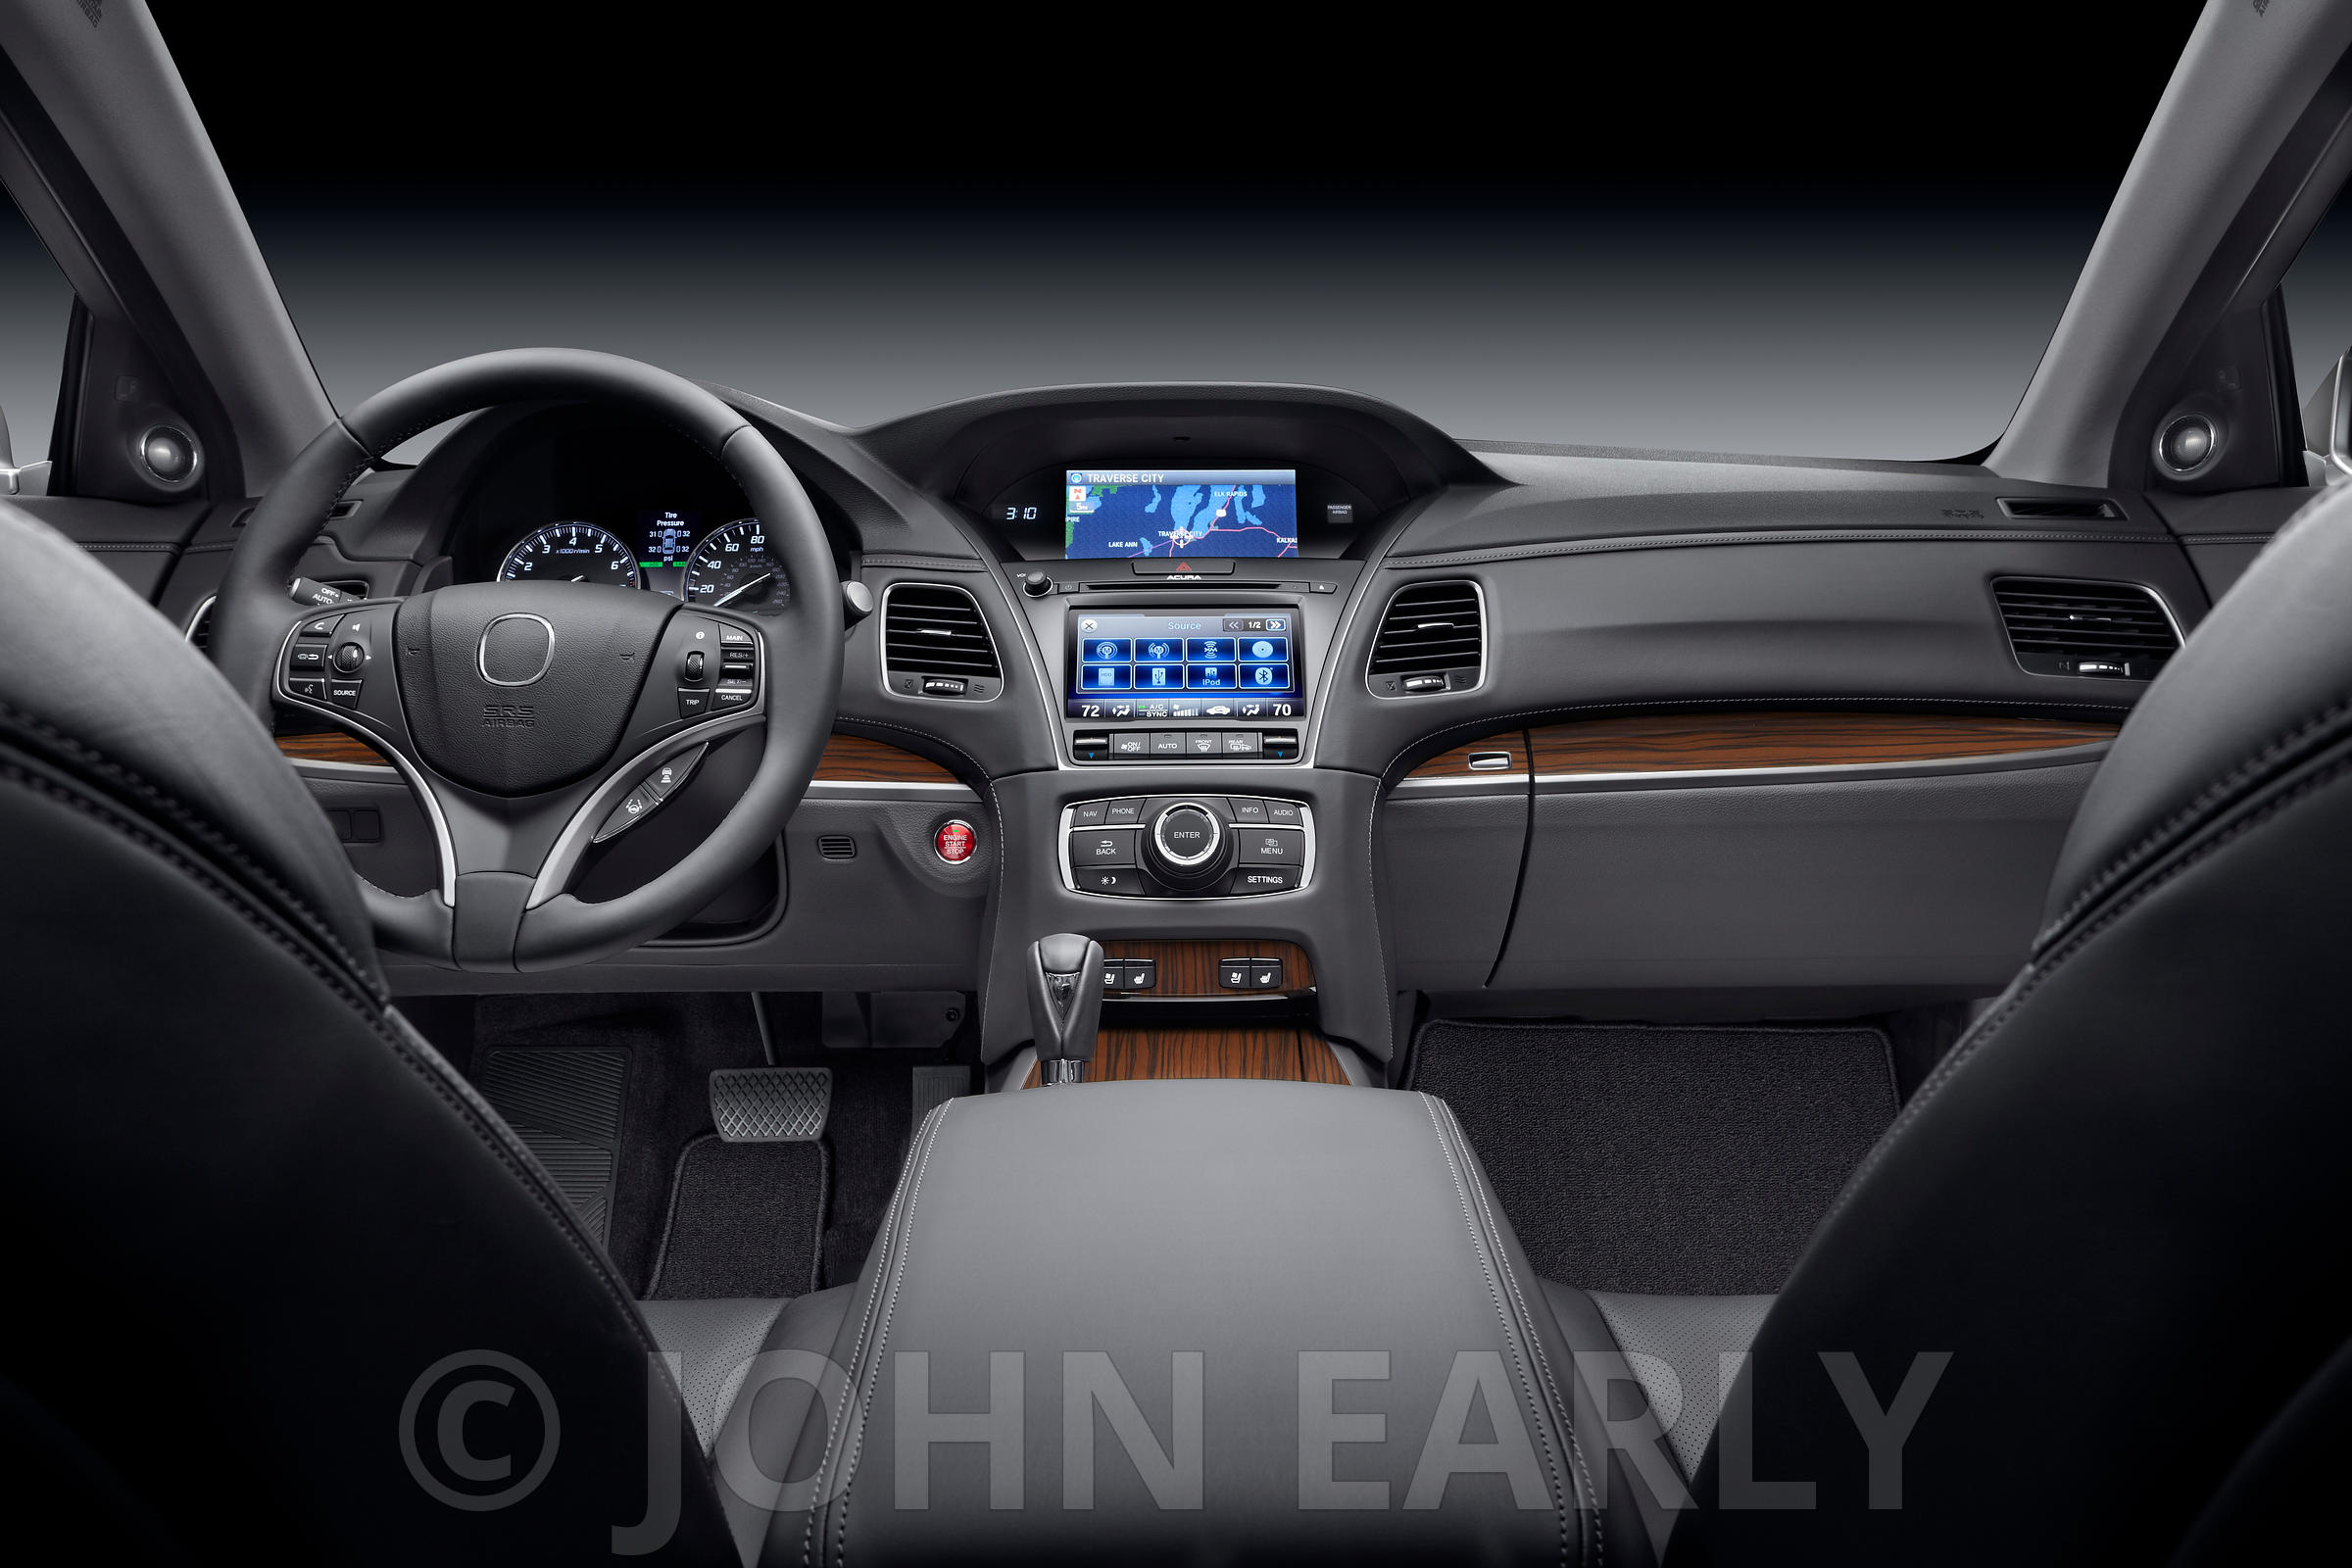 Behind The Front Seats View of Luxury Car Dash